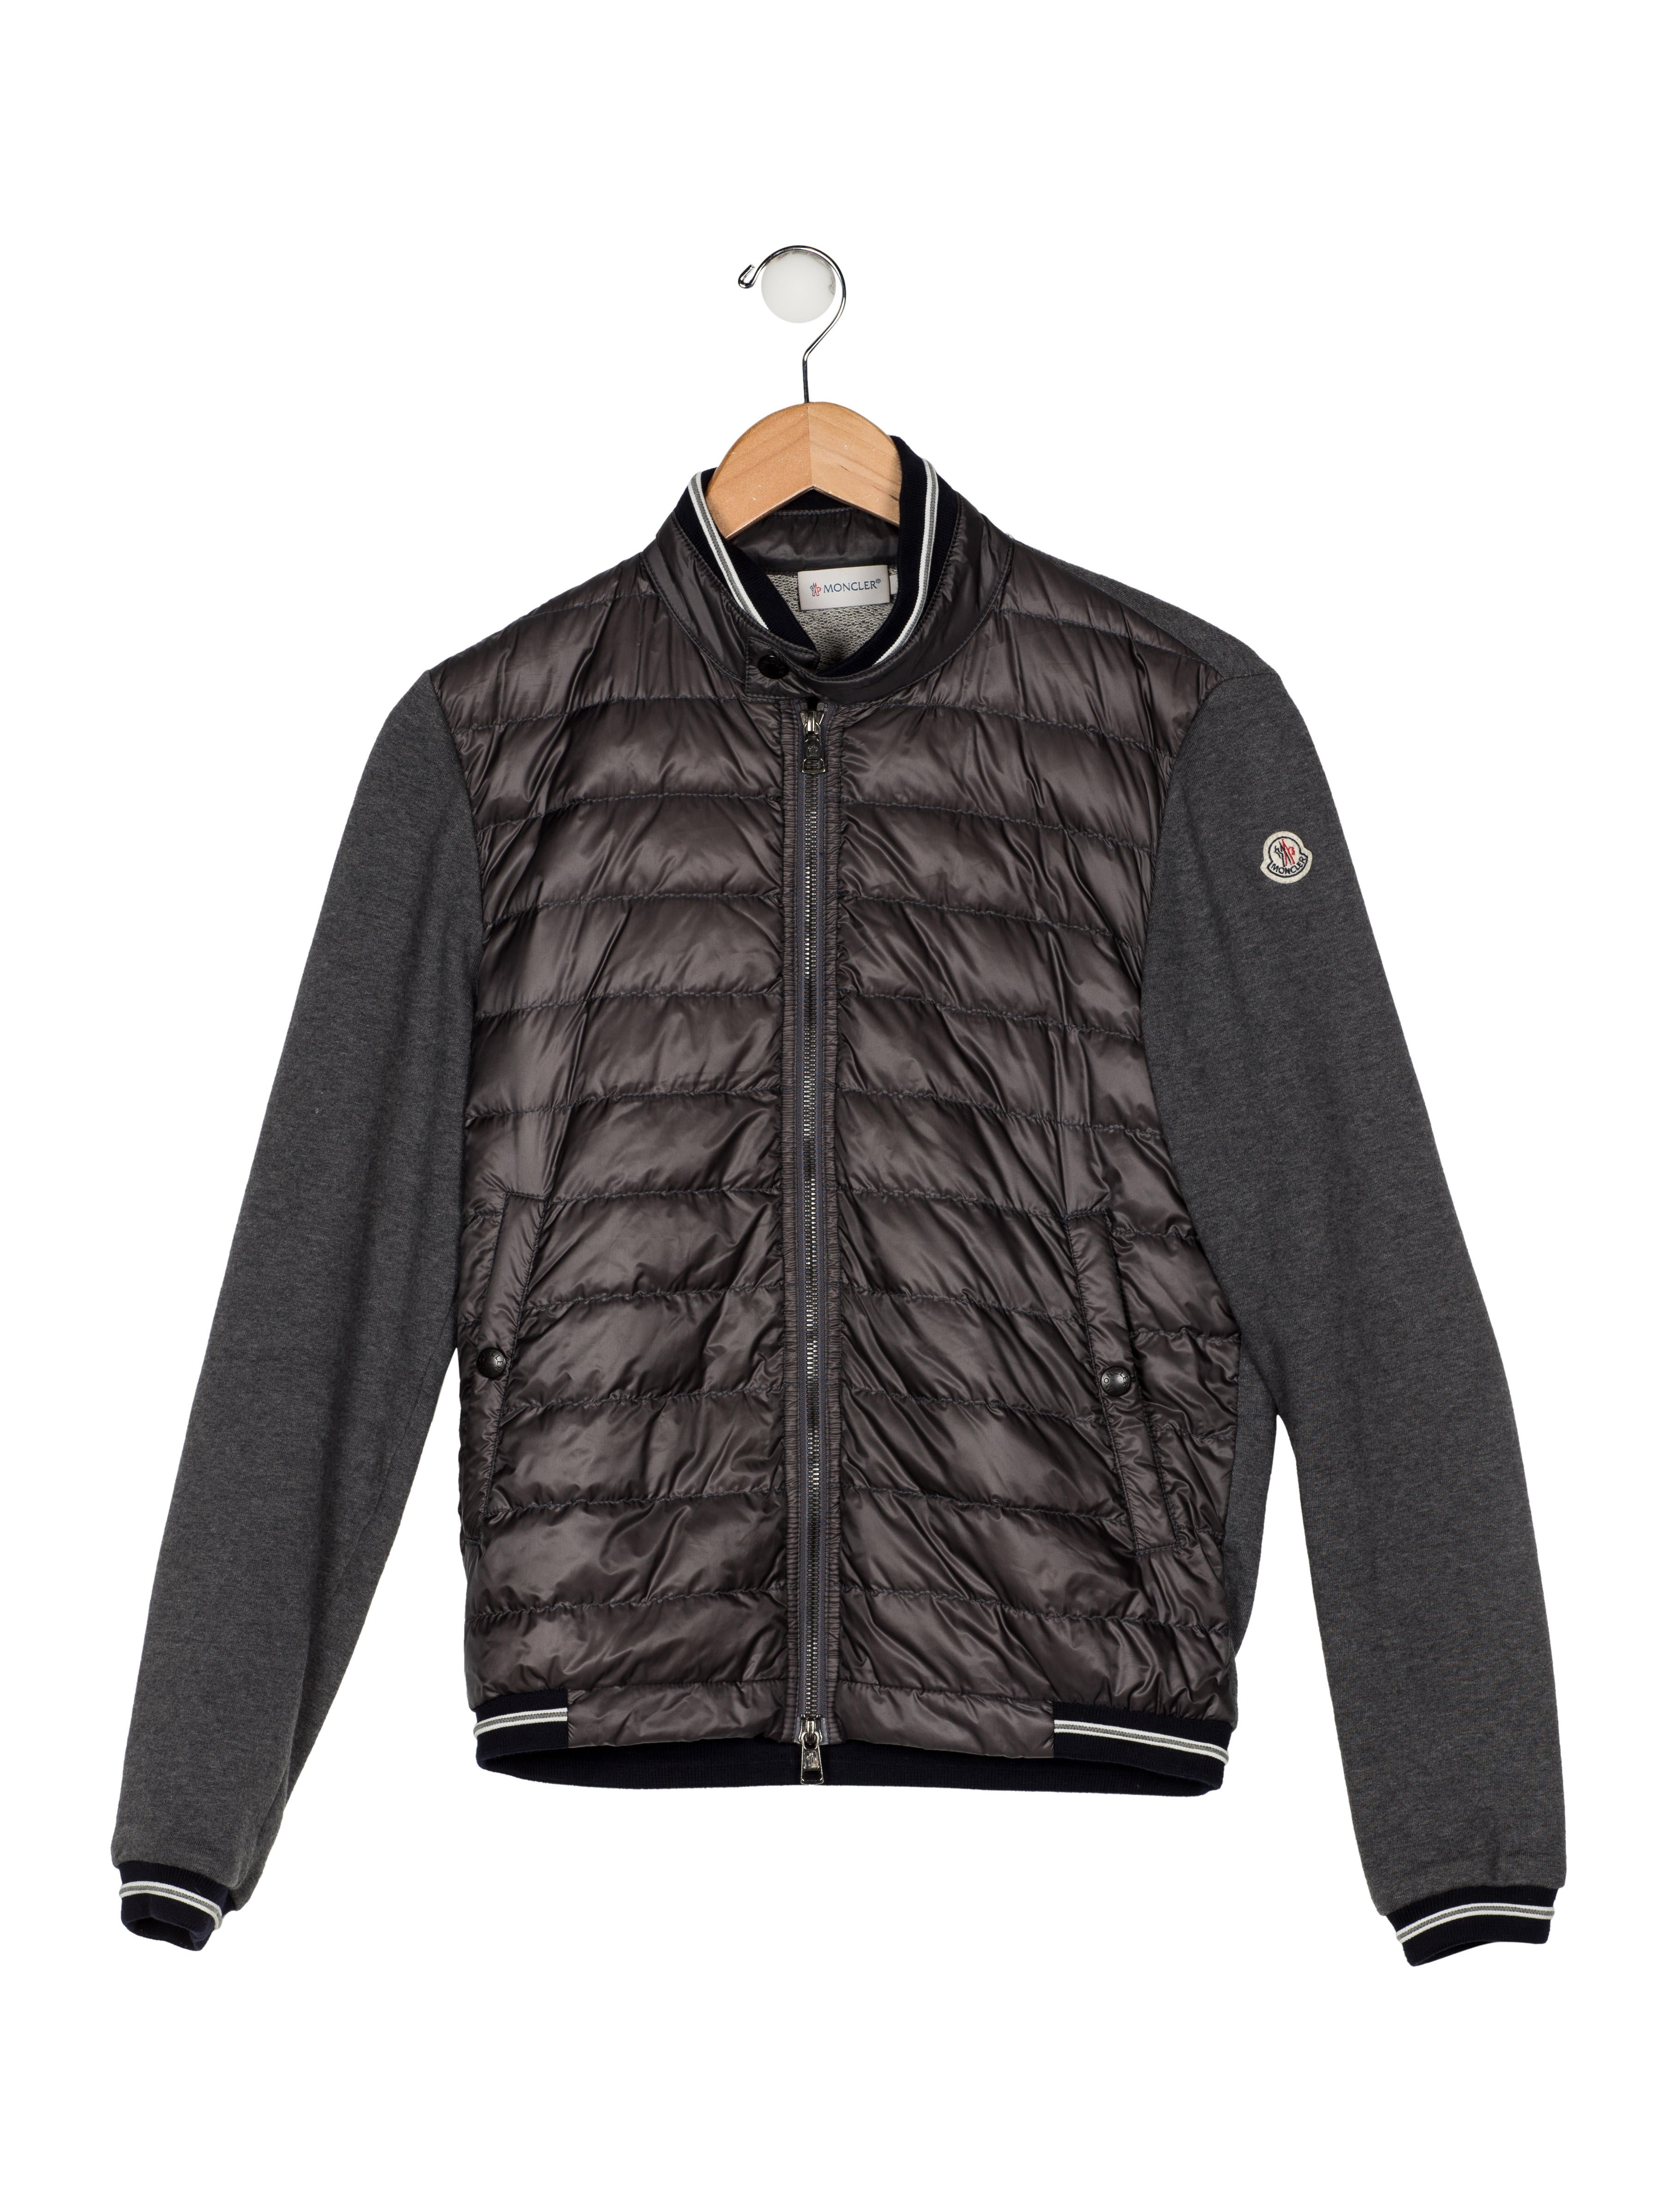 25d02fd406c445 Moncler Kids | The RealReal